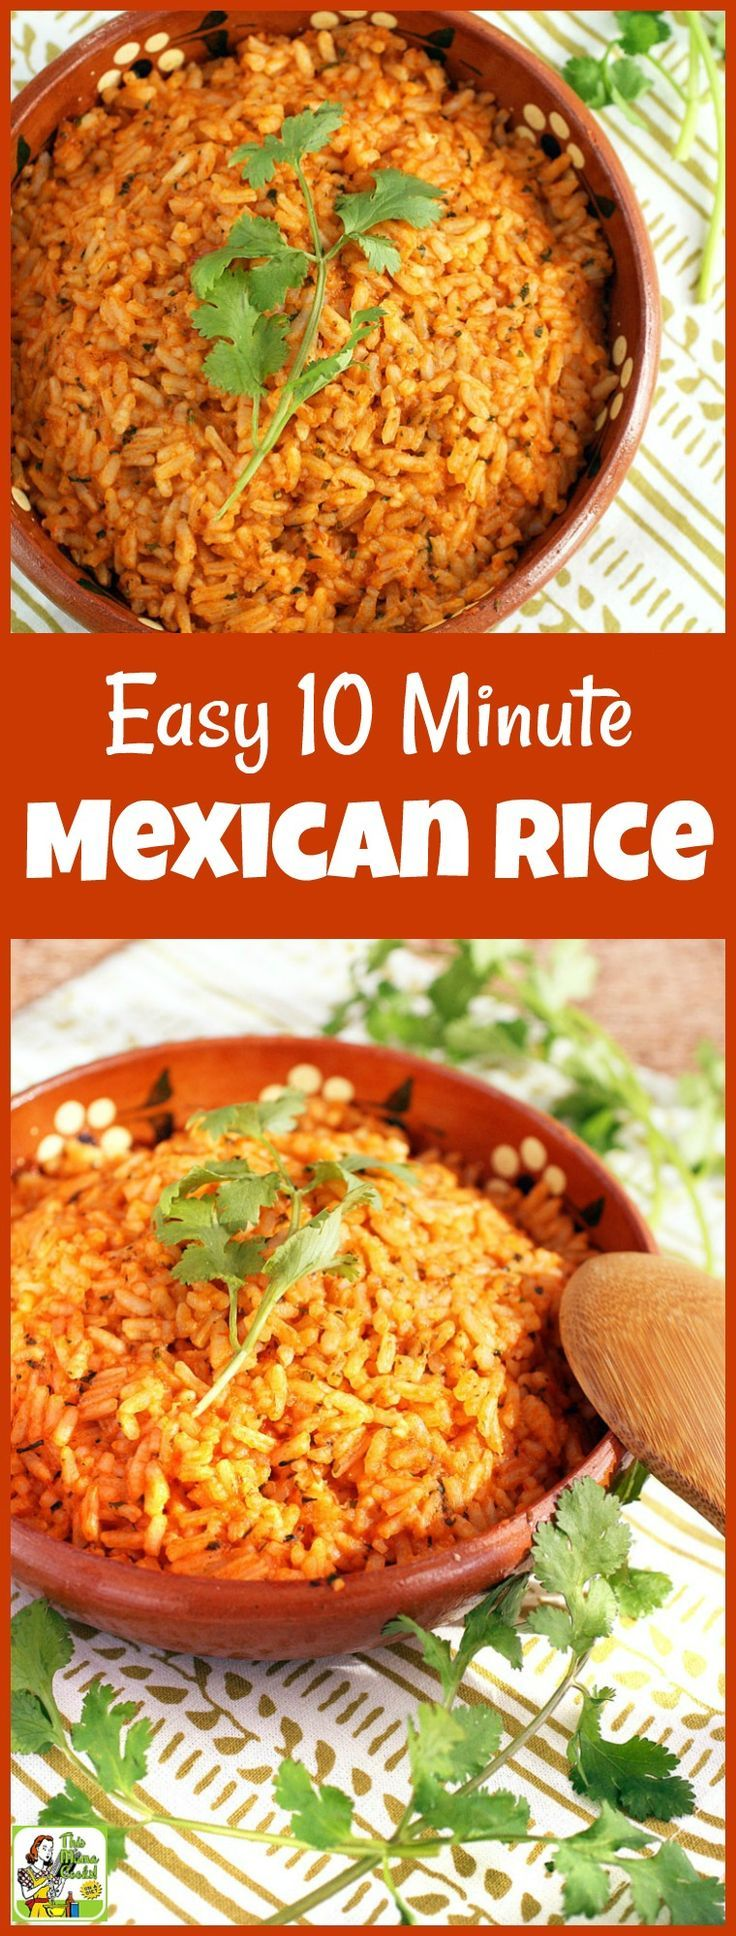 This Easy Mexican Rice recipe takes only 10 minutes to make!